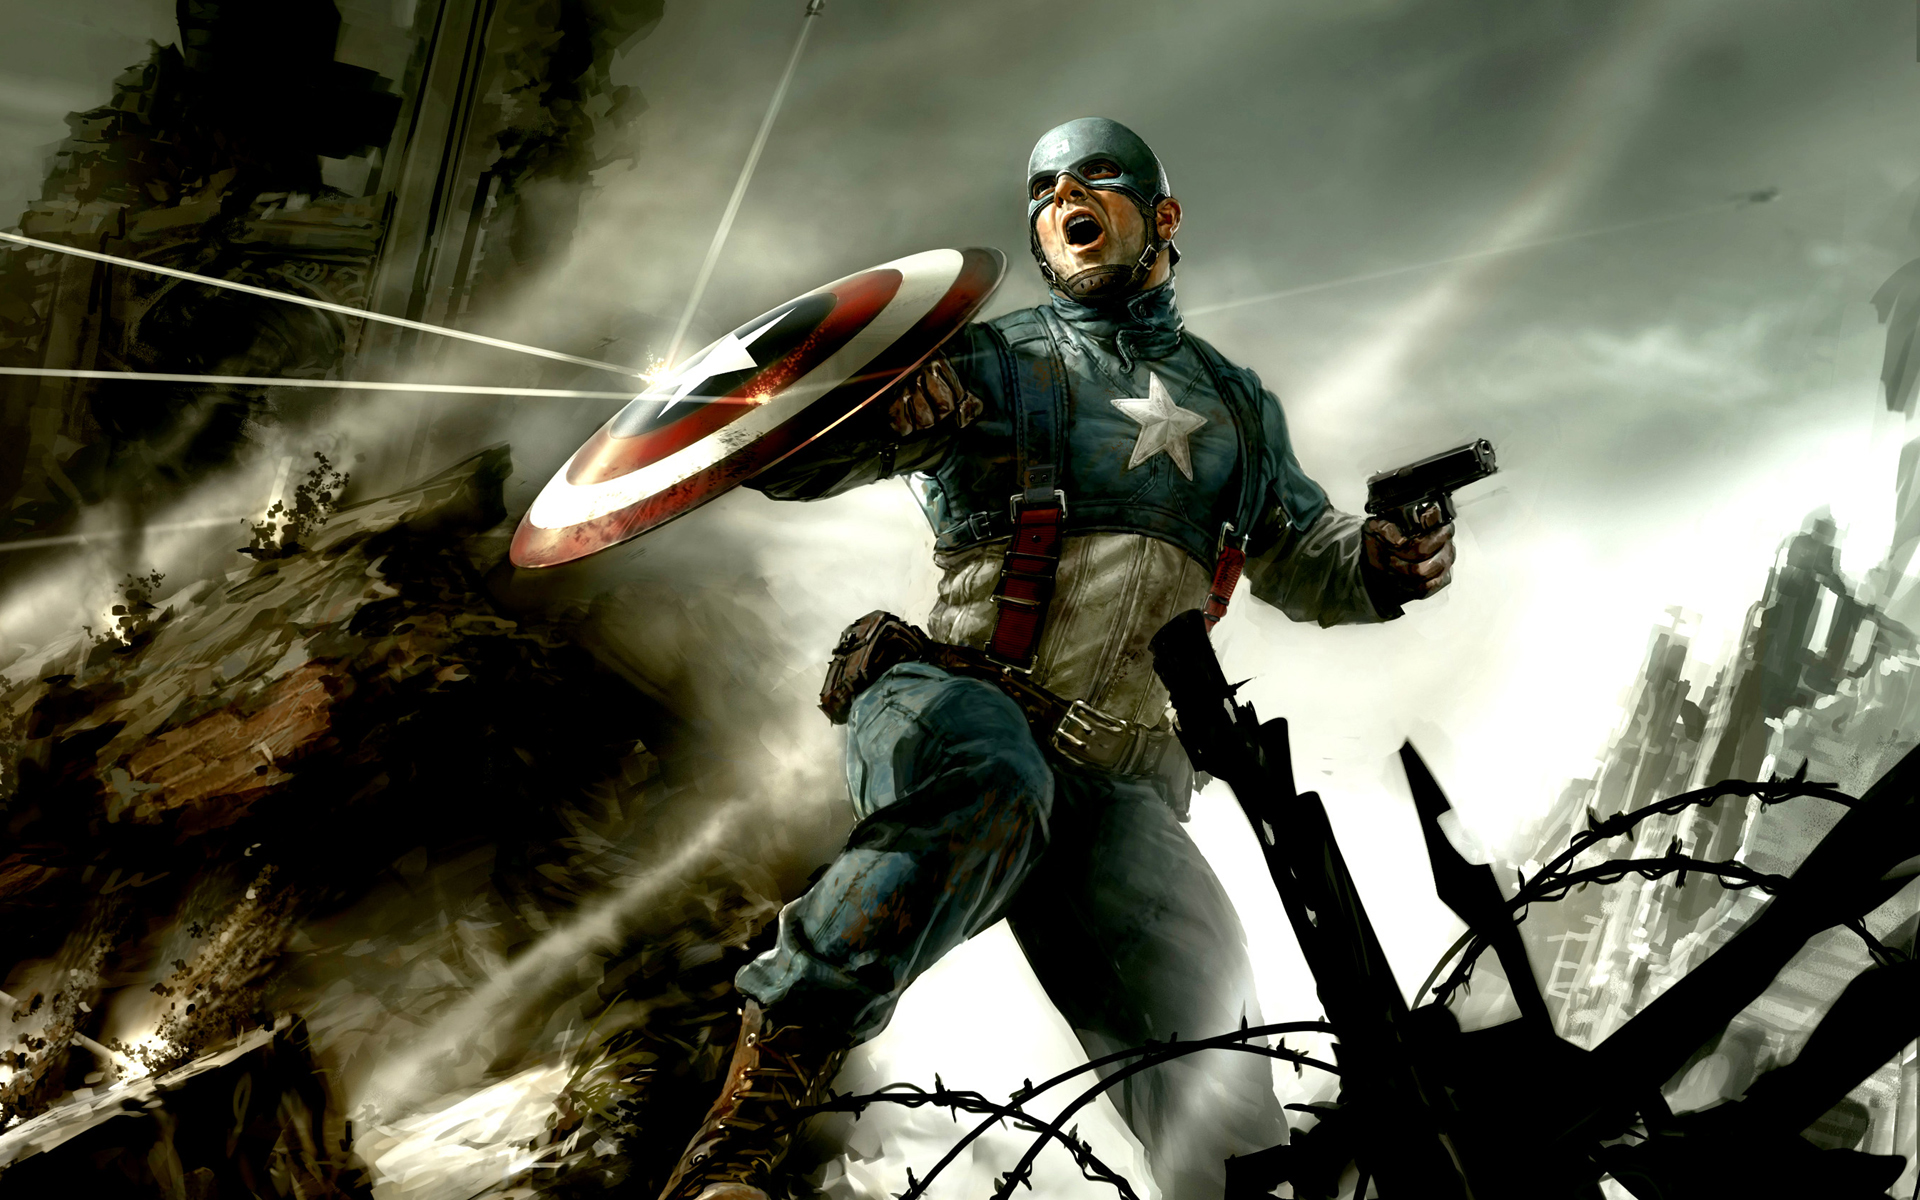 Captain america cg wallpapers wallpapers hd - Cg background hd ...